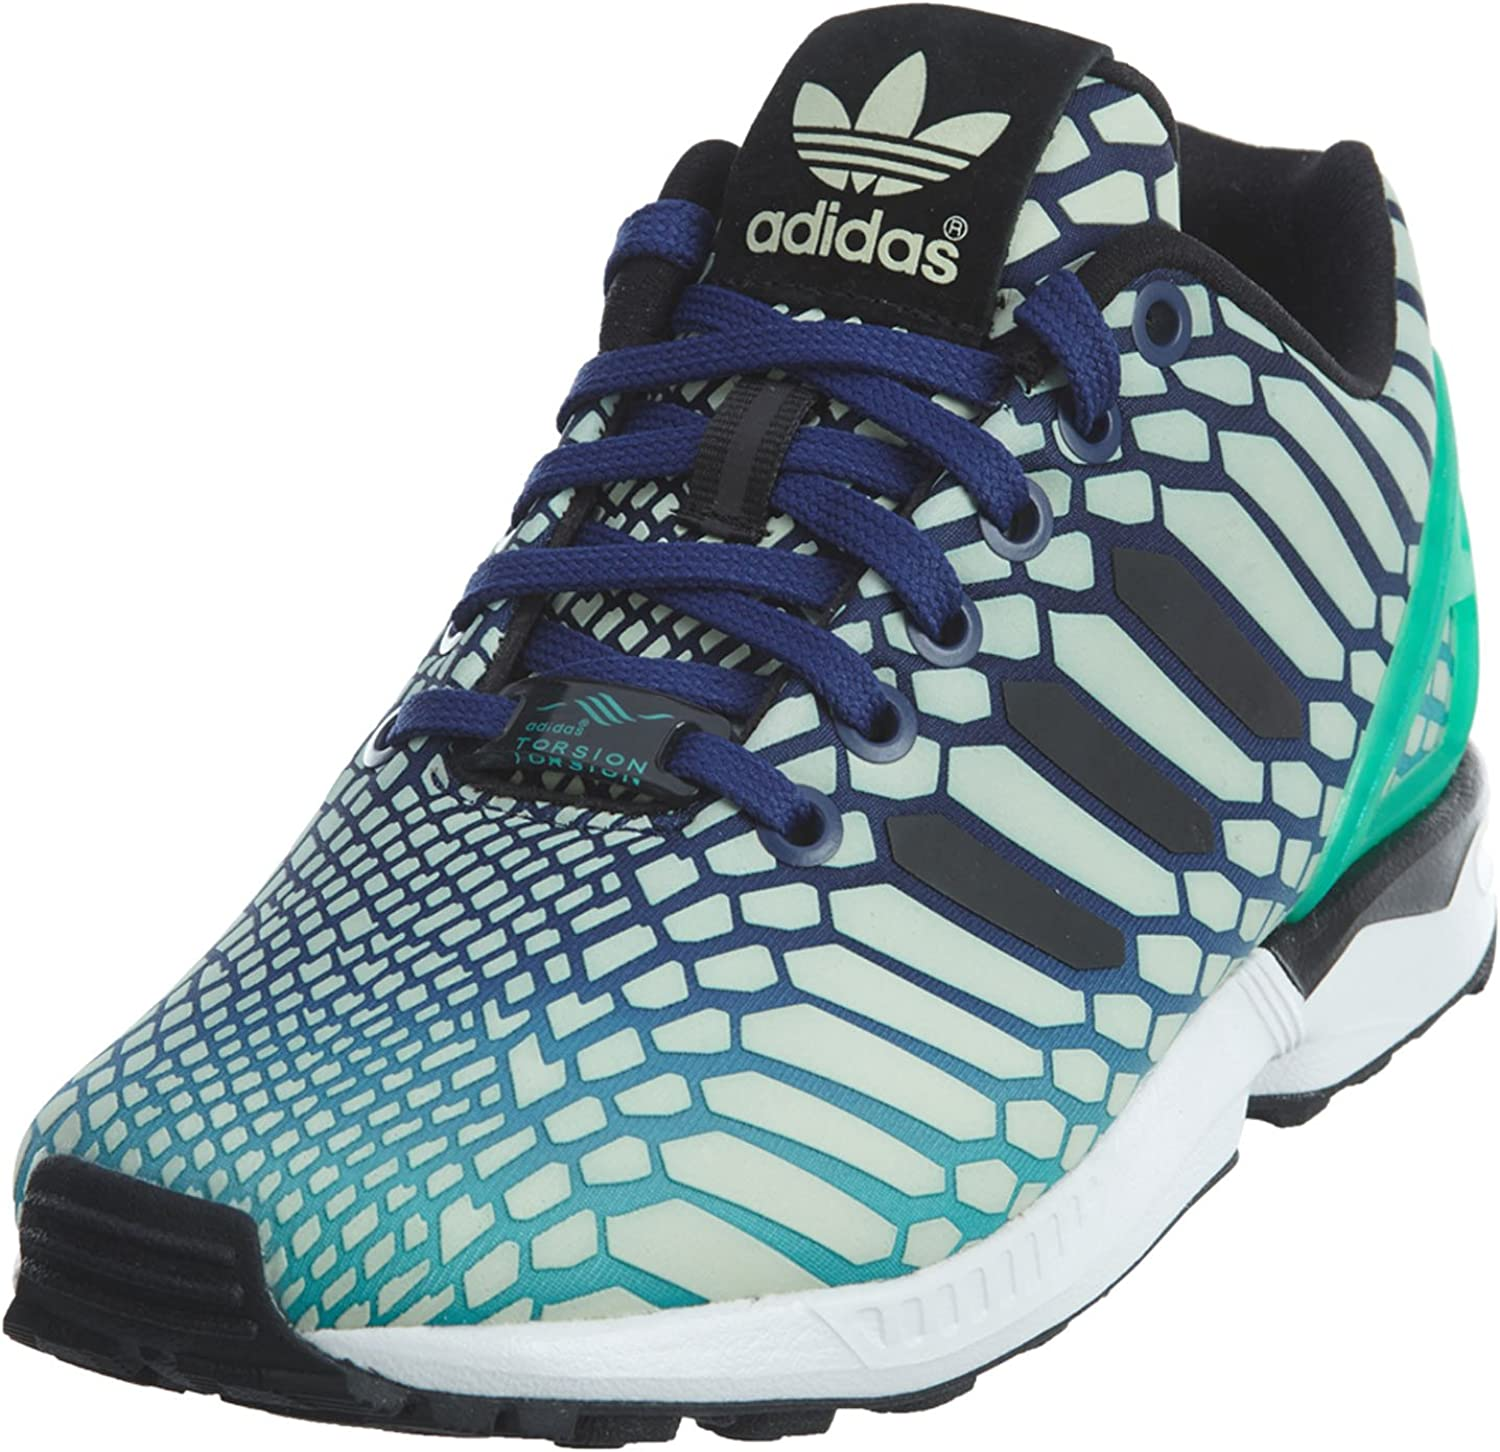 adidas ZX Flux Big Kids